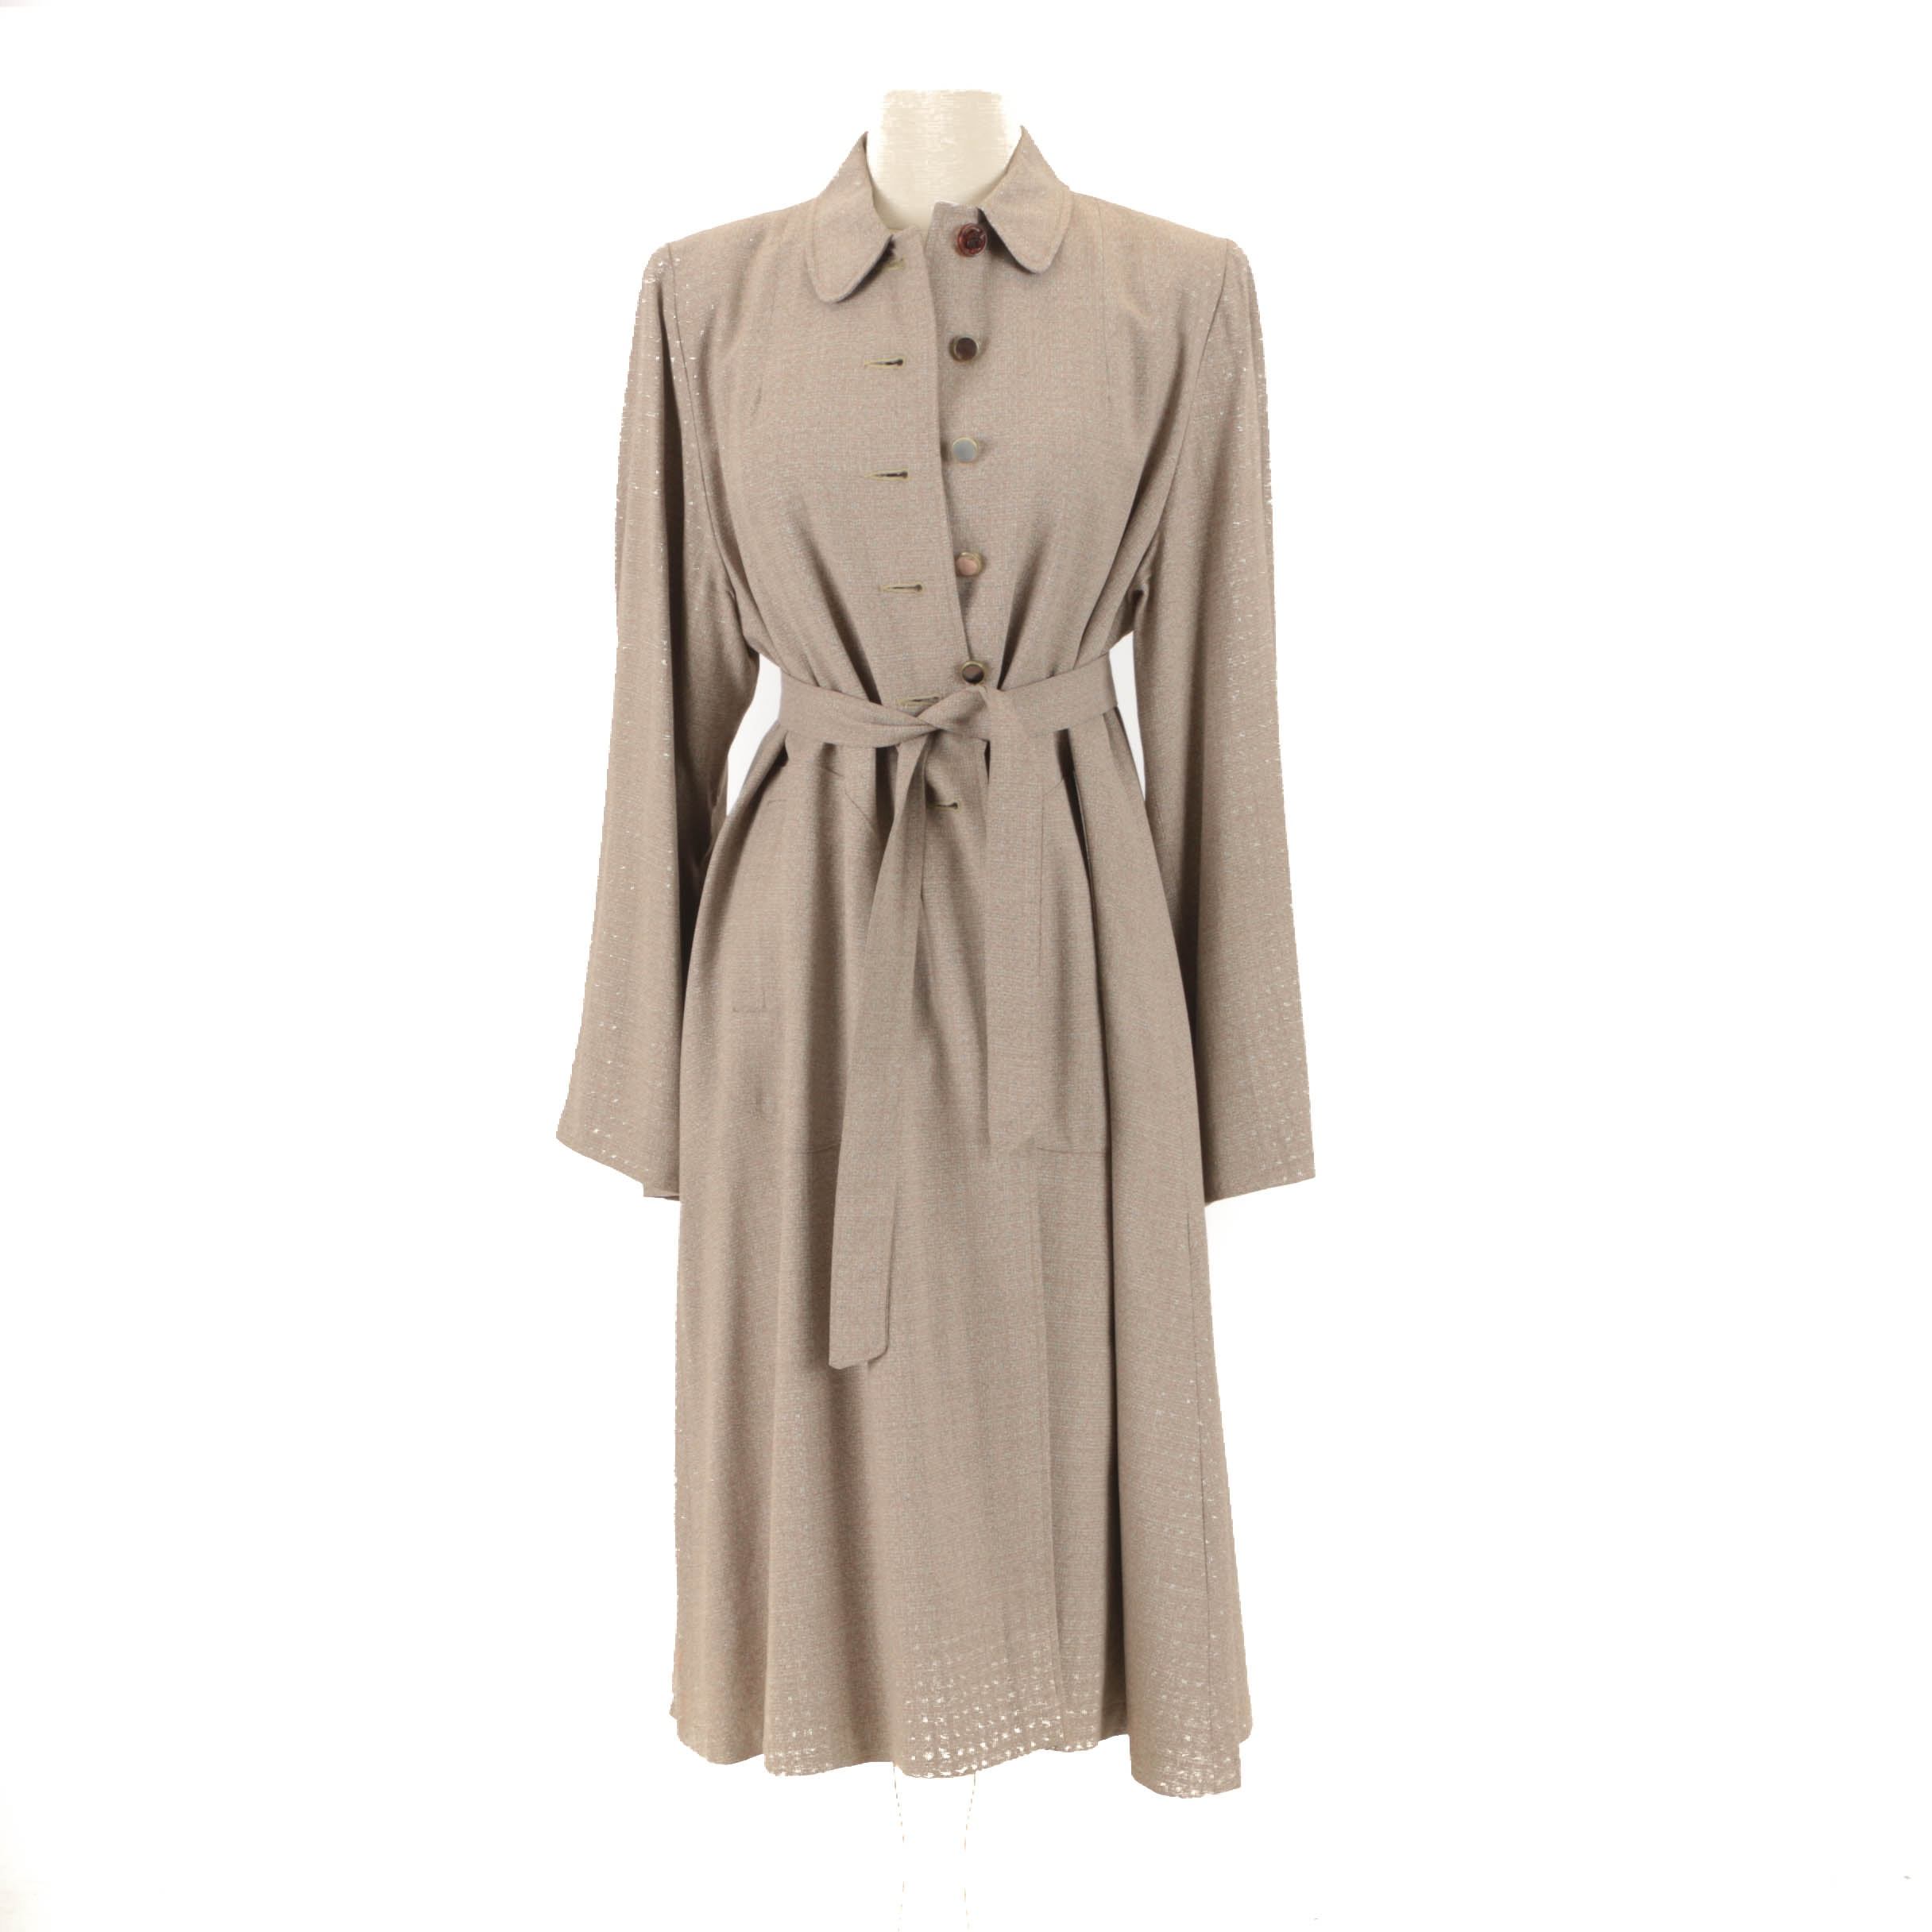 Women's 1960s Vintage Wool Coat